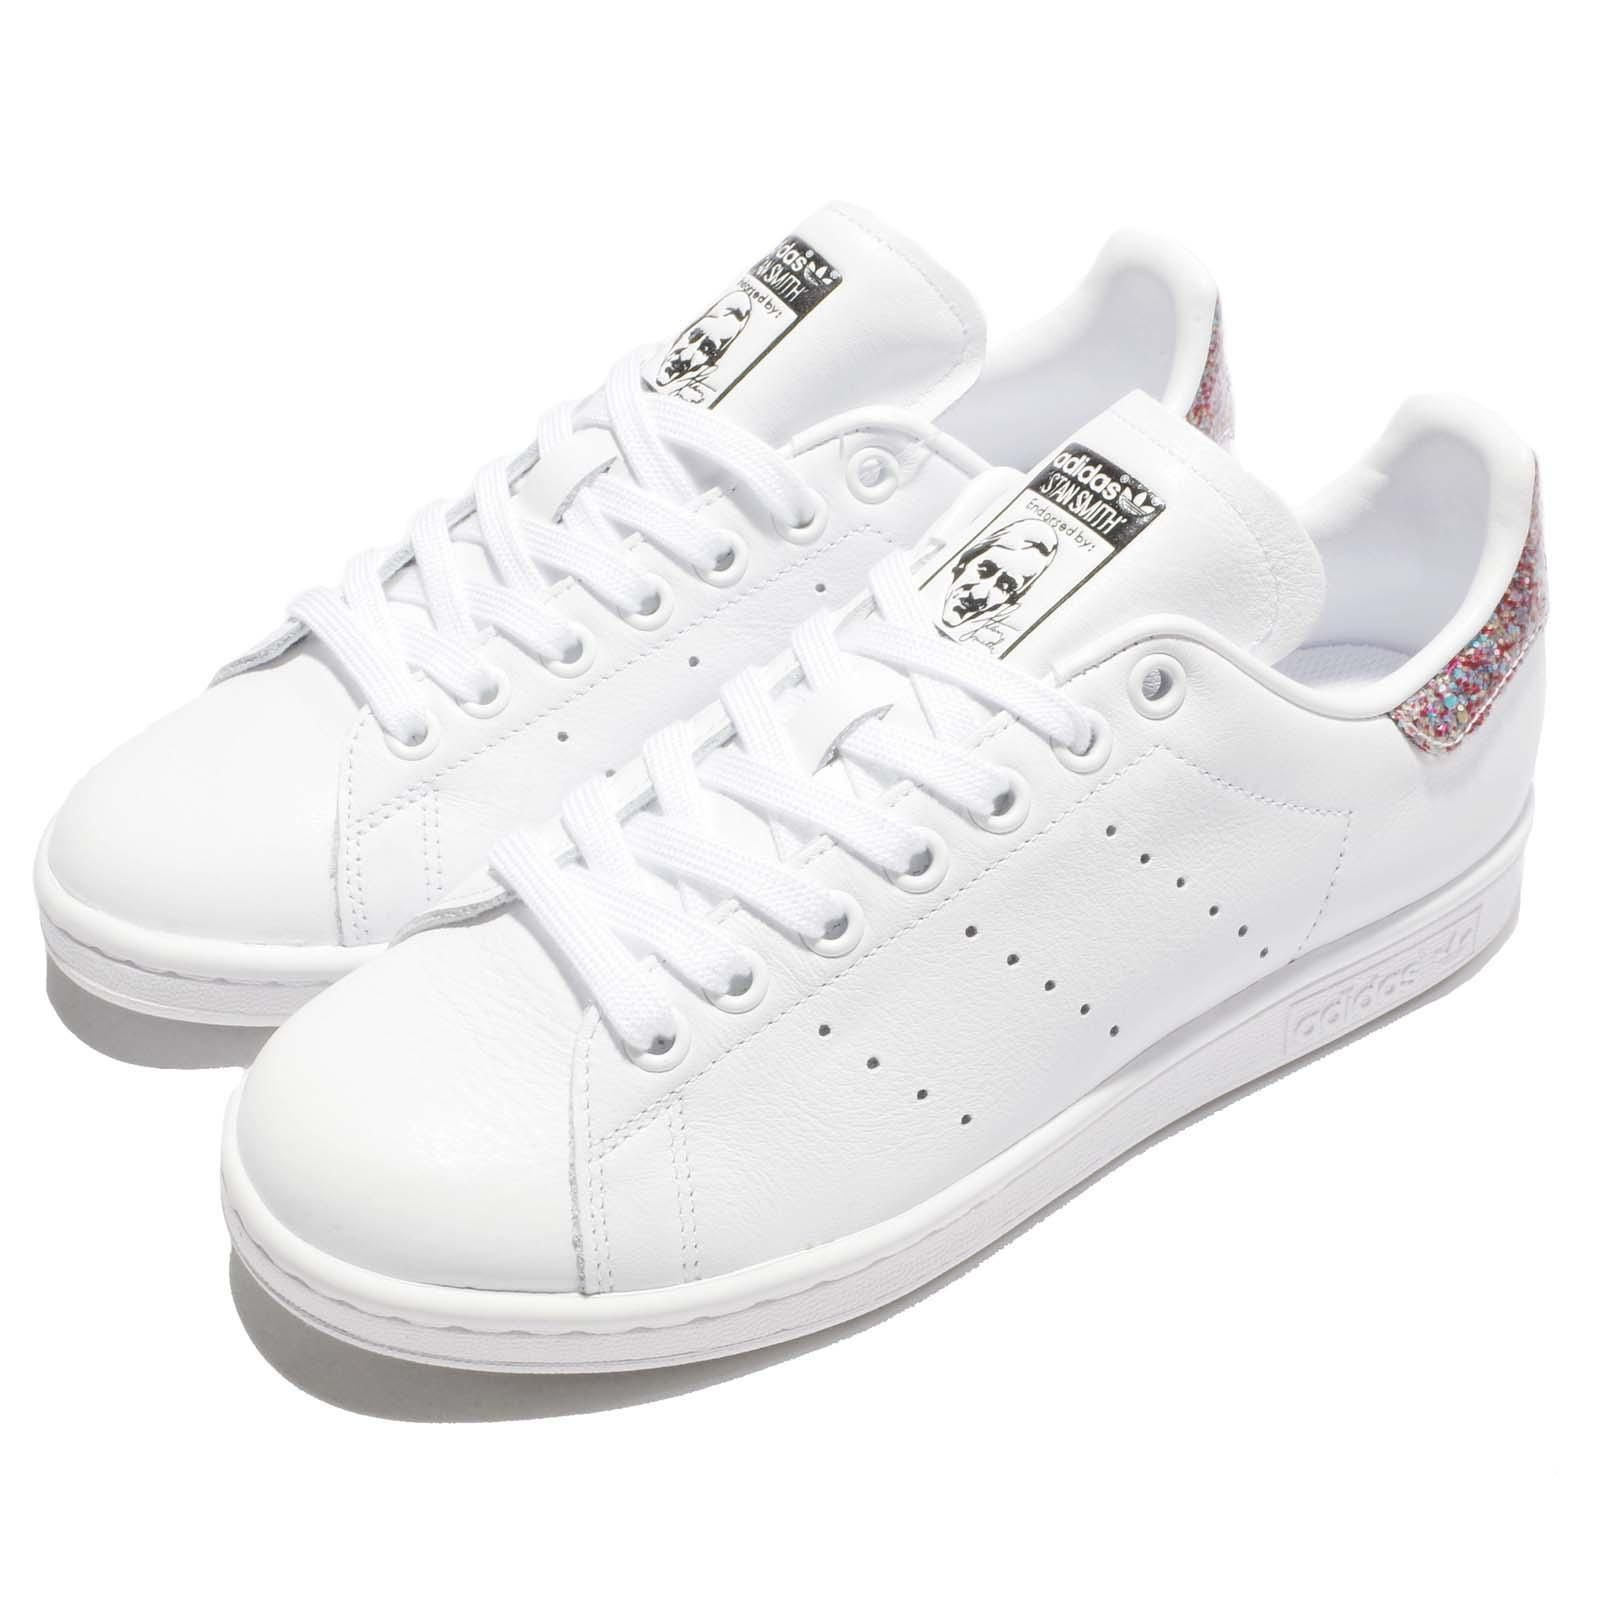 da539565def5 Adidas Originals Stan Smith W Glitter White Rainbow Women Shoes Sneakers  S76912